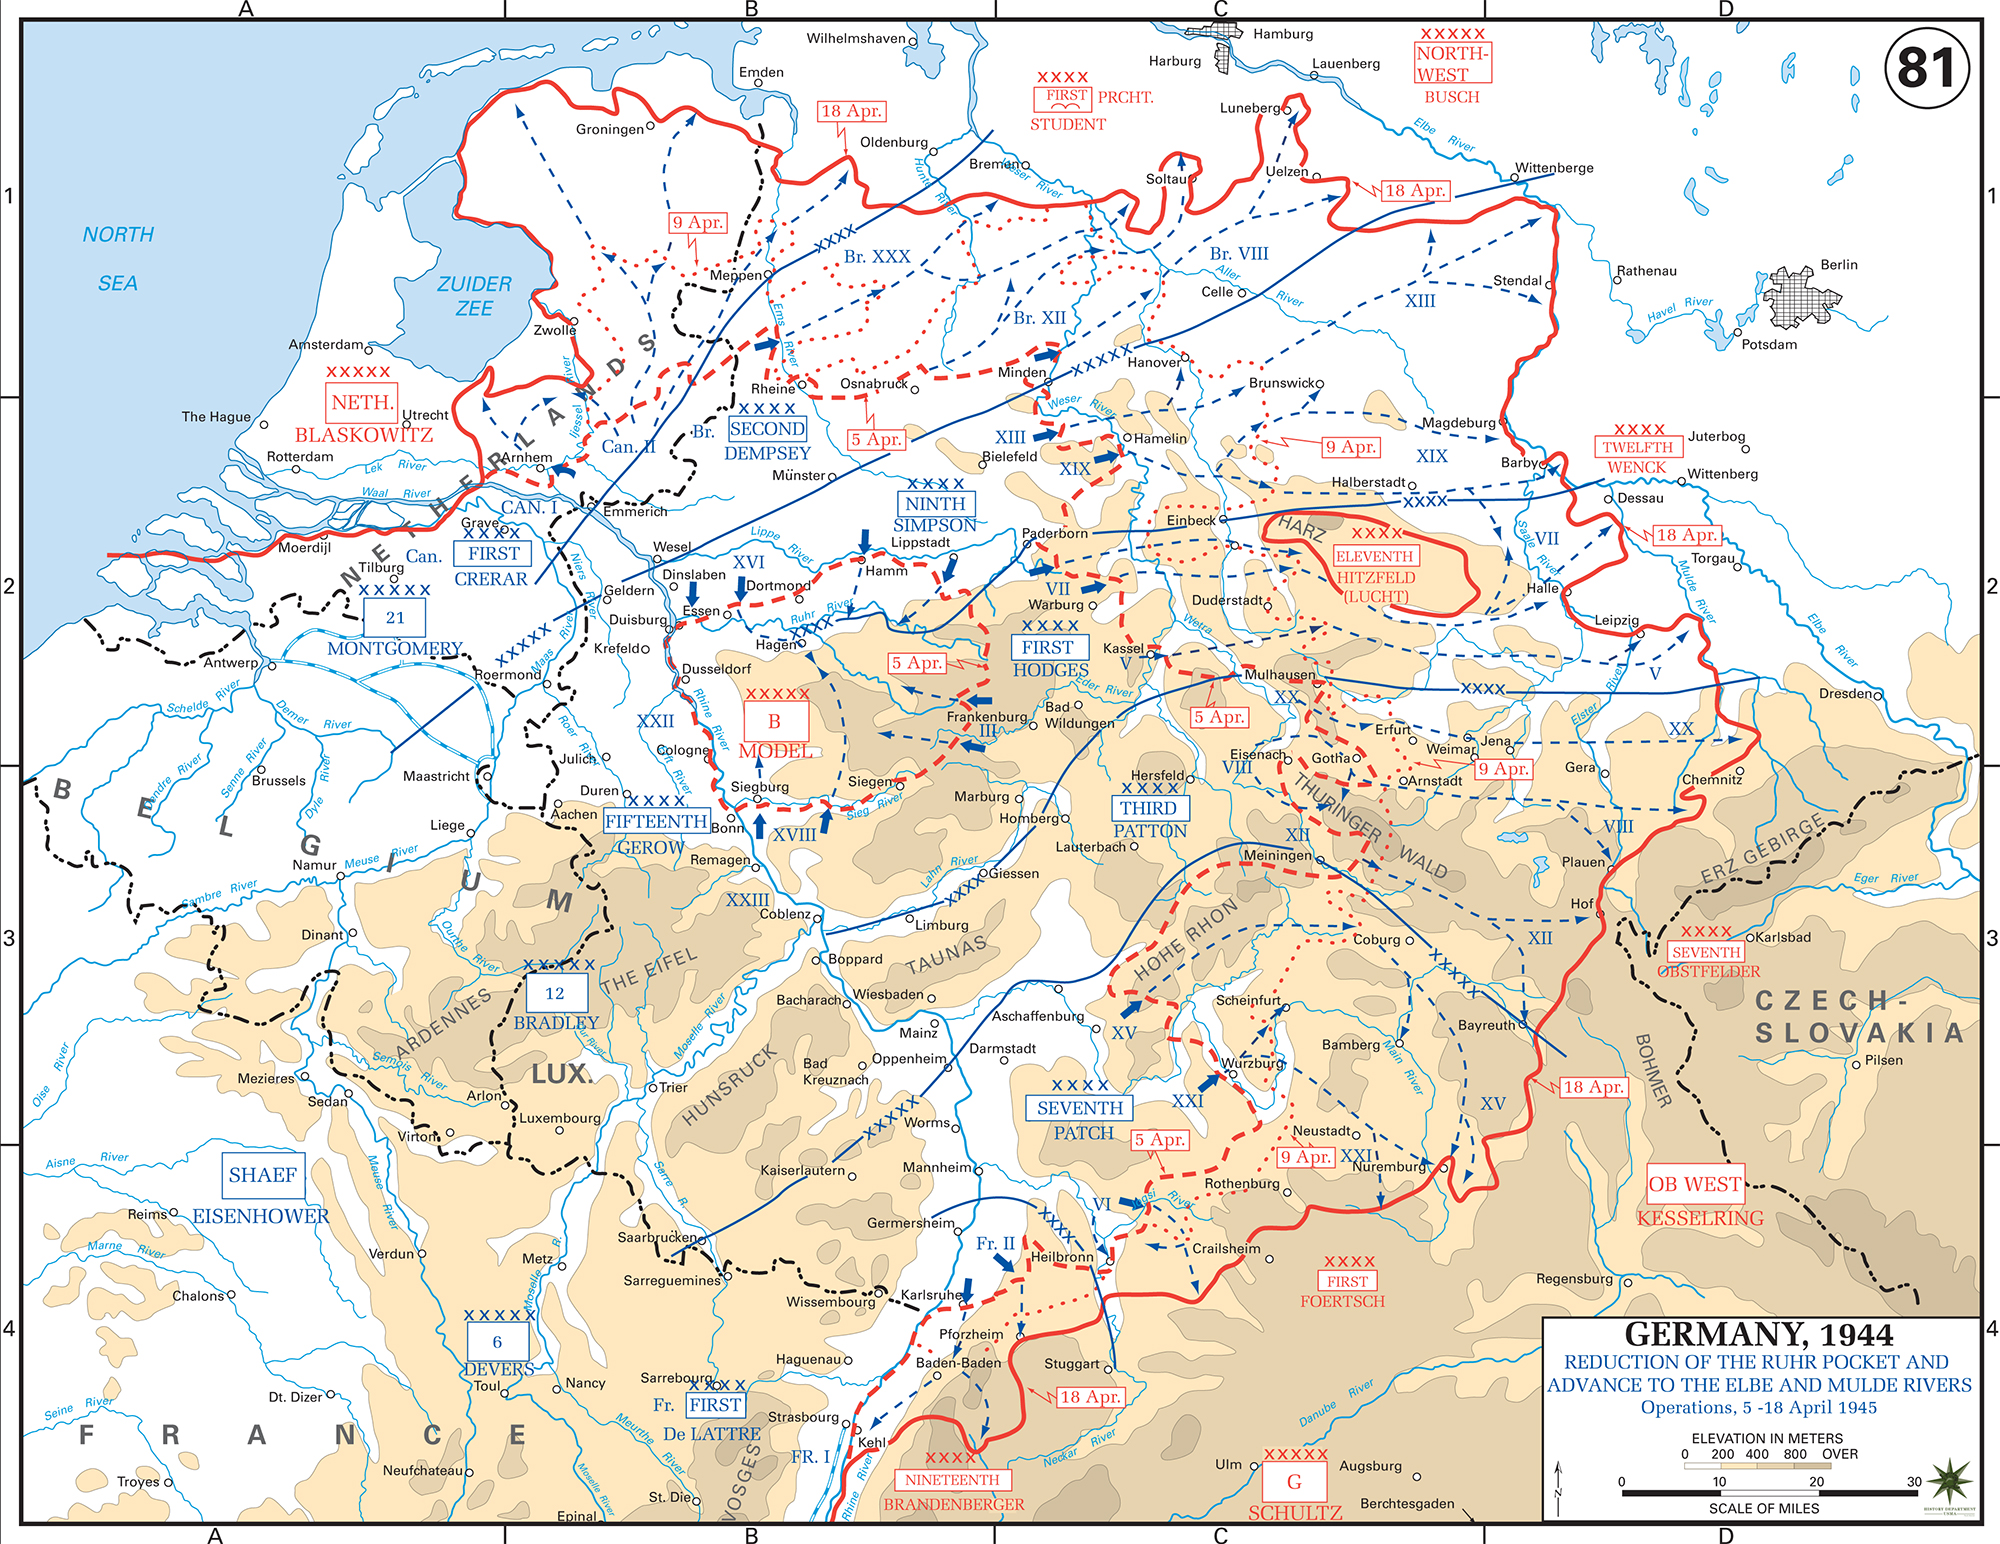 map of world war ii germany reduction of the ruhr pocket and advance to